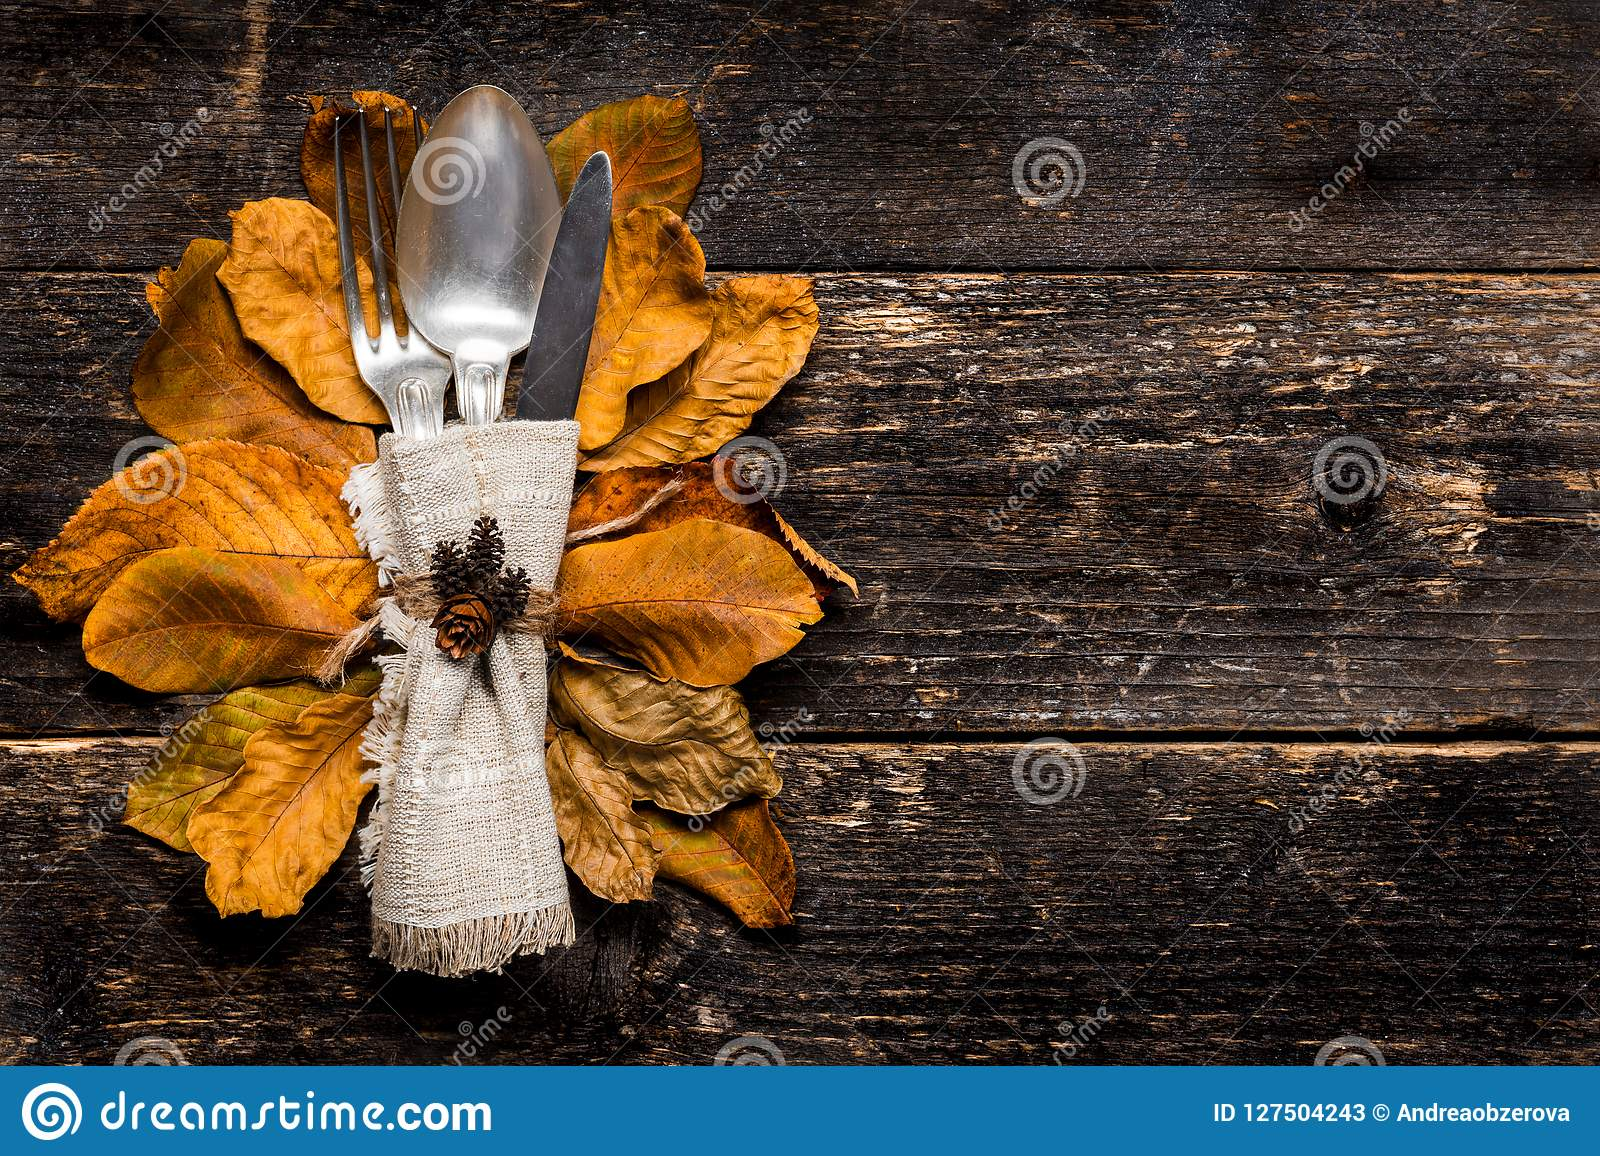 Thanksgiving Meal Setting. Seasonal table setting. Thanksgiving autumn place setting with cutlery and colorful fall fall leaves.